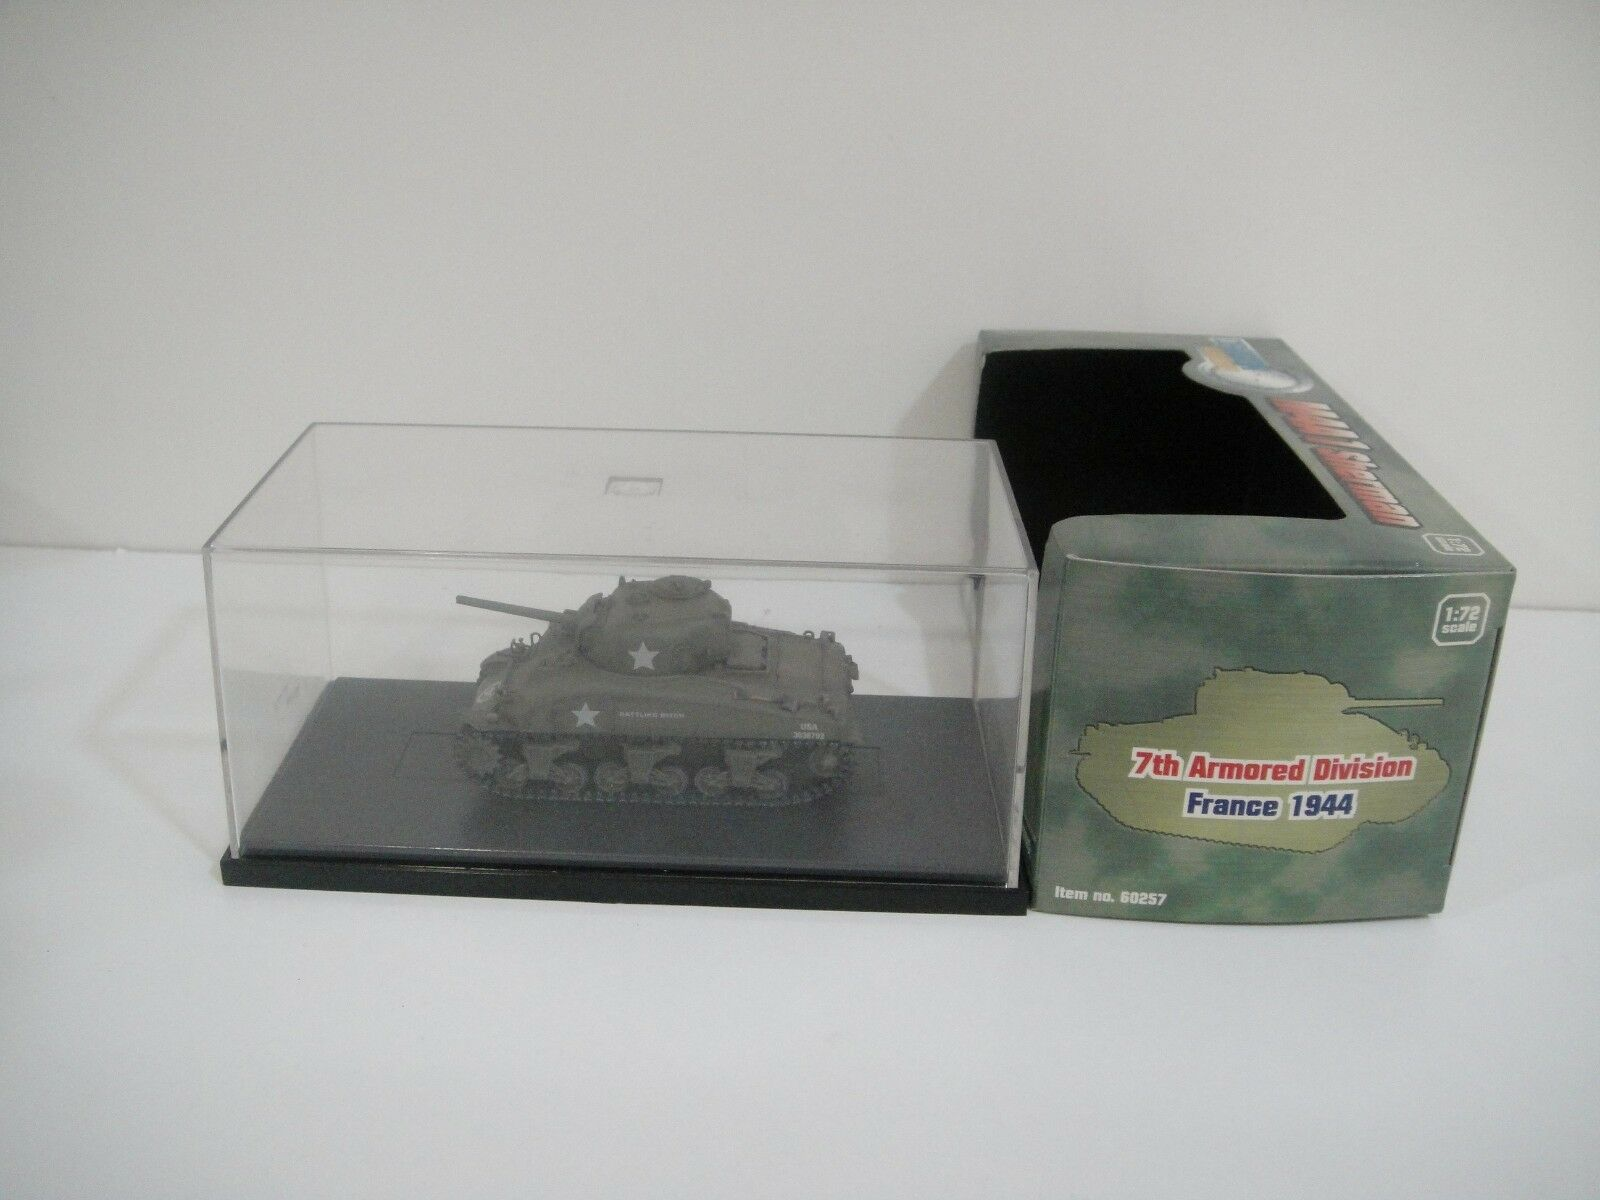 1 72 DRAG0N ARMOR. M4A1 Sherman. 7th Armoruge Division. France 1944